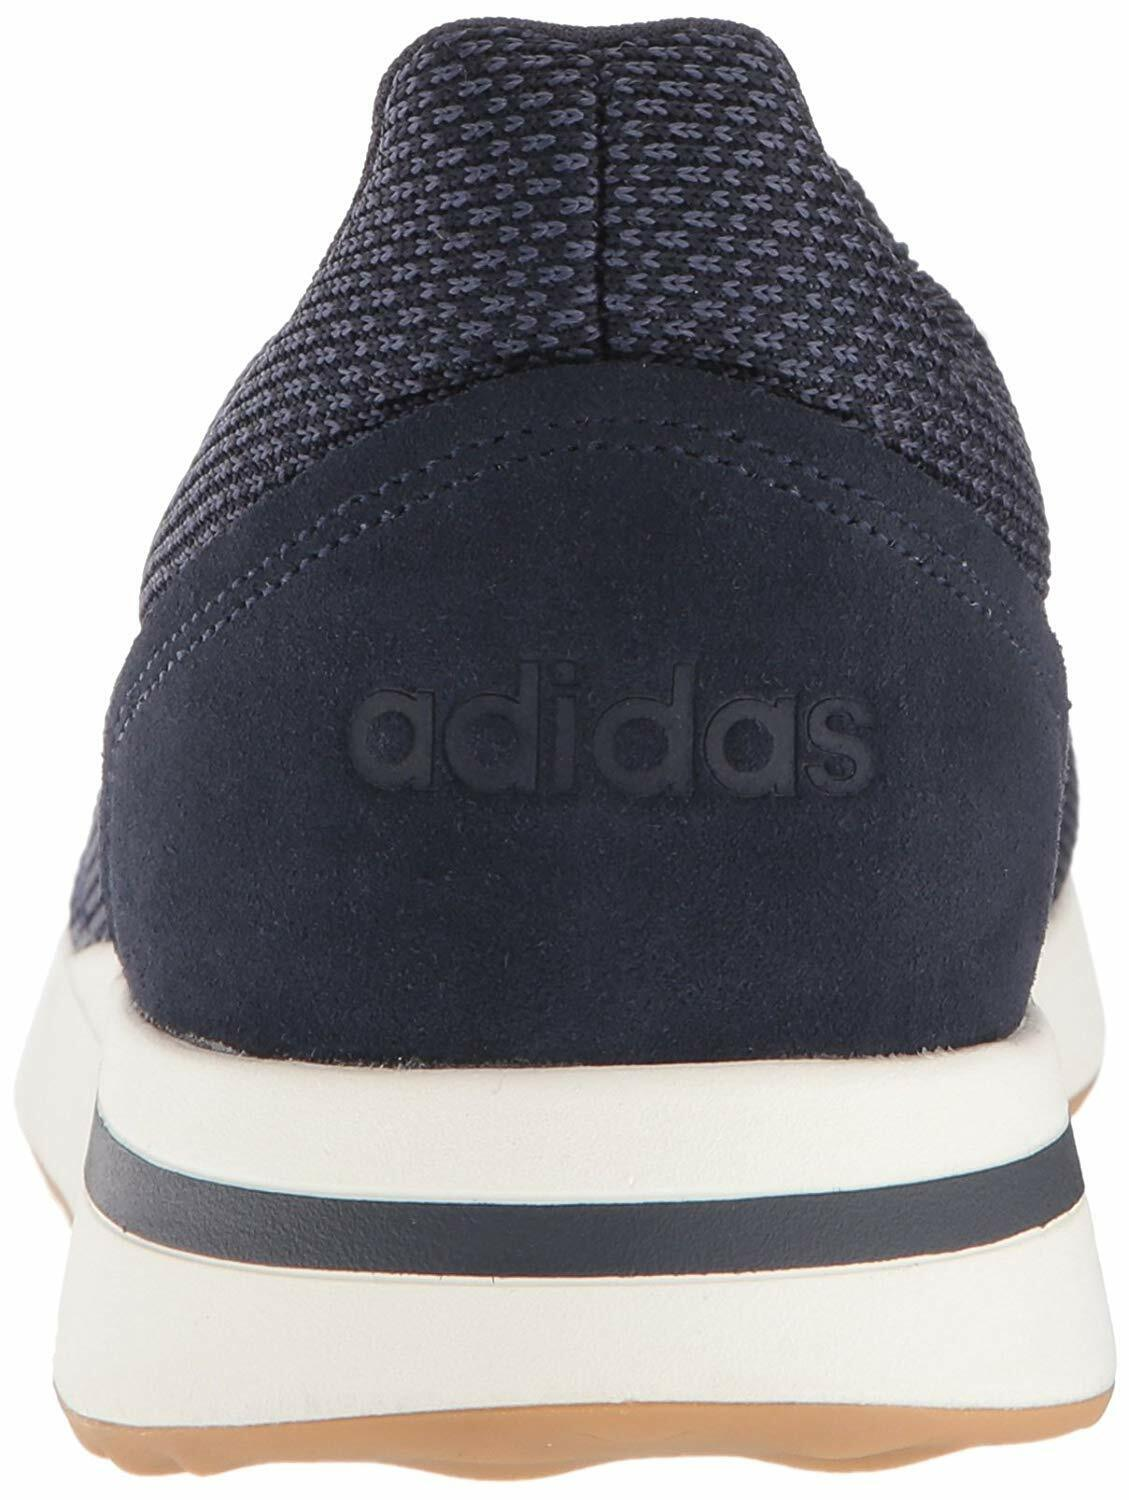 Adidas Men's Run70s Running shoes B96559 SIZE 9.5 NEW IN IN IN THE BOX a5b2fb